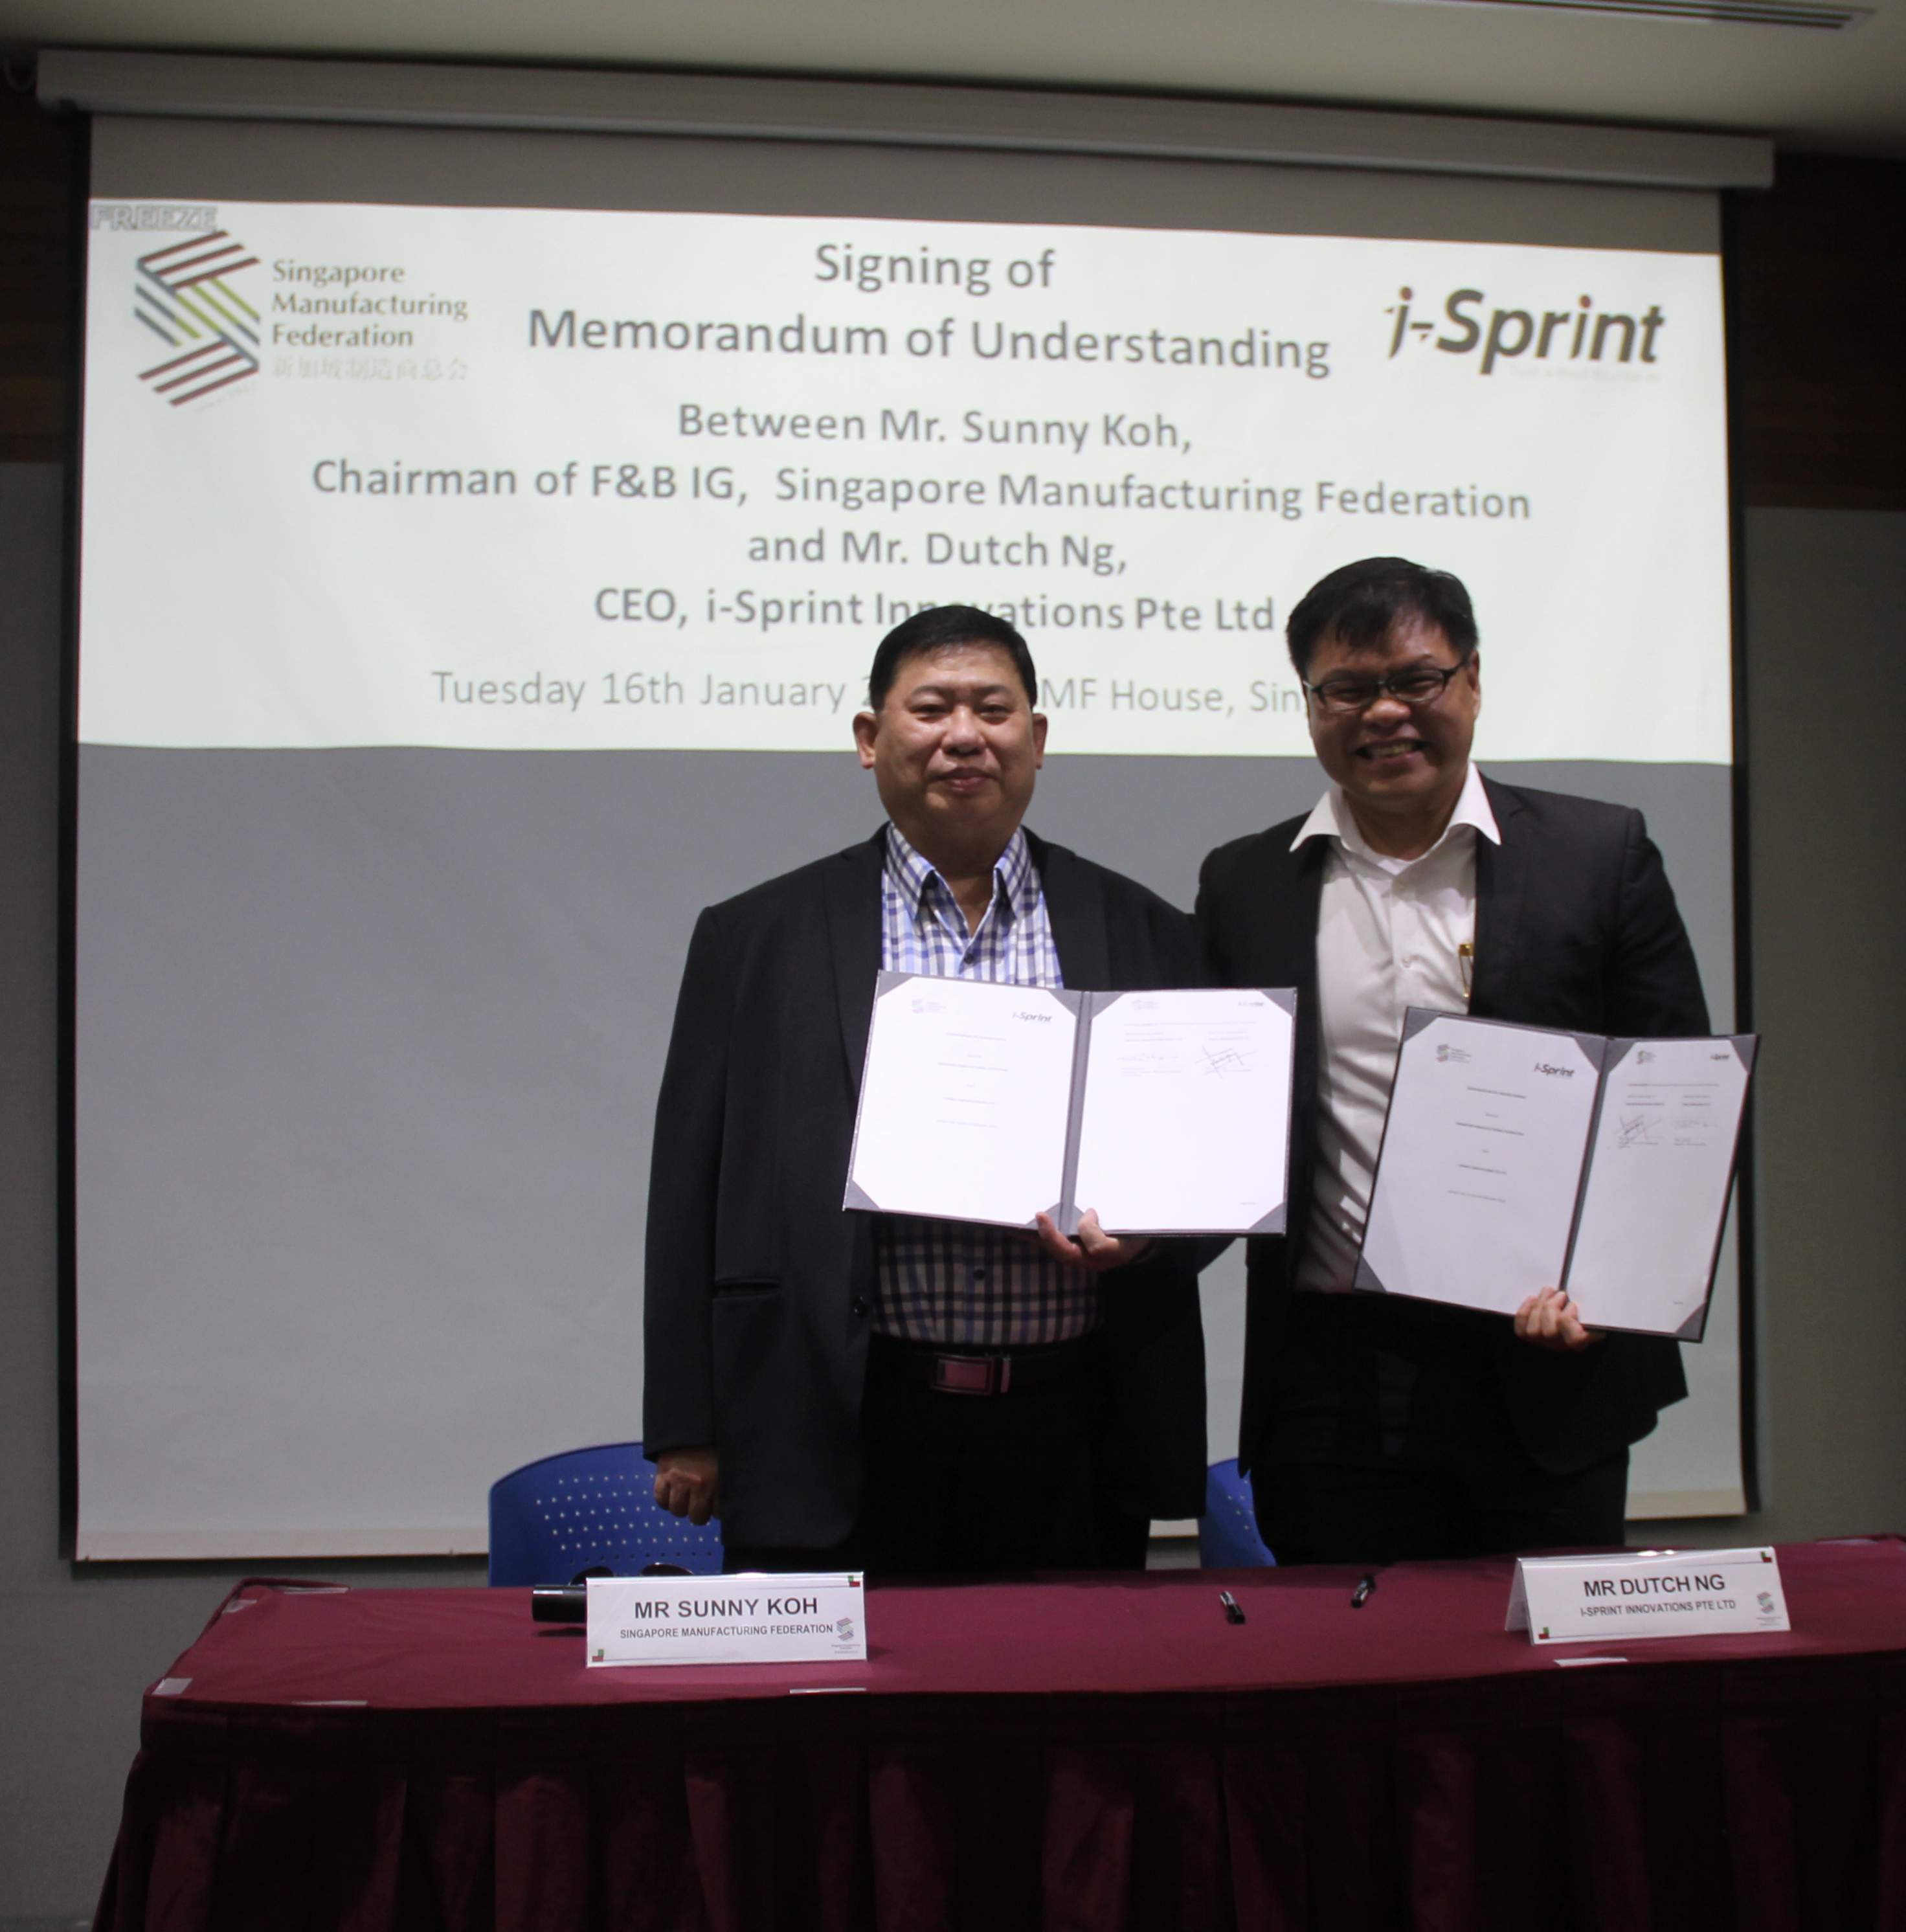 i-Sprint Innovations CEO: Mr Dutch Ng signing Memorandum of Understanding with SMF Chairman of F&B IG: Mr Sunny Koh